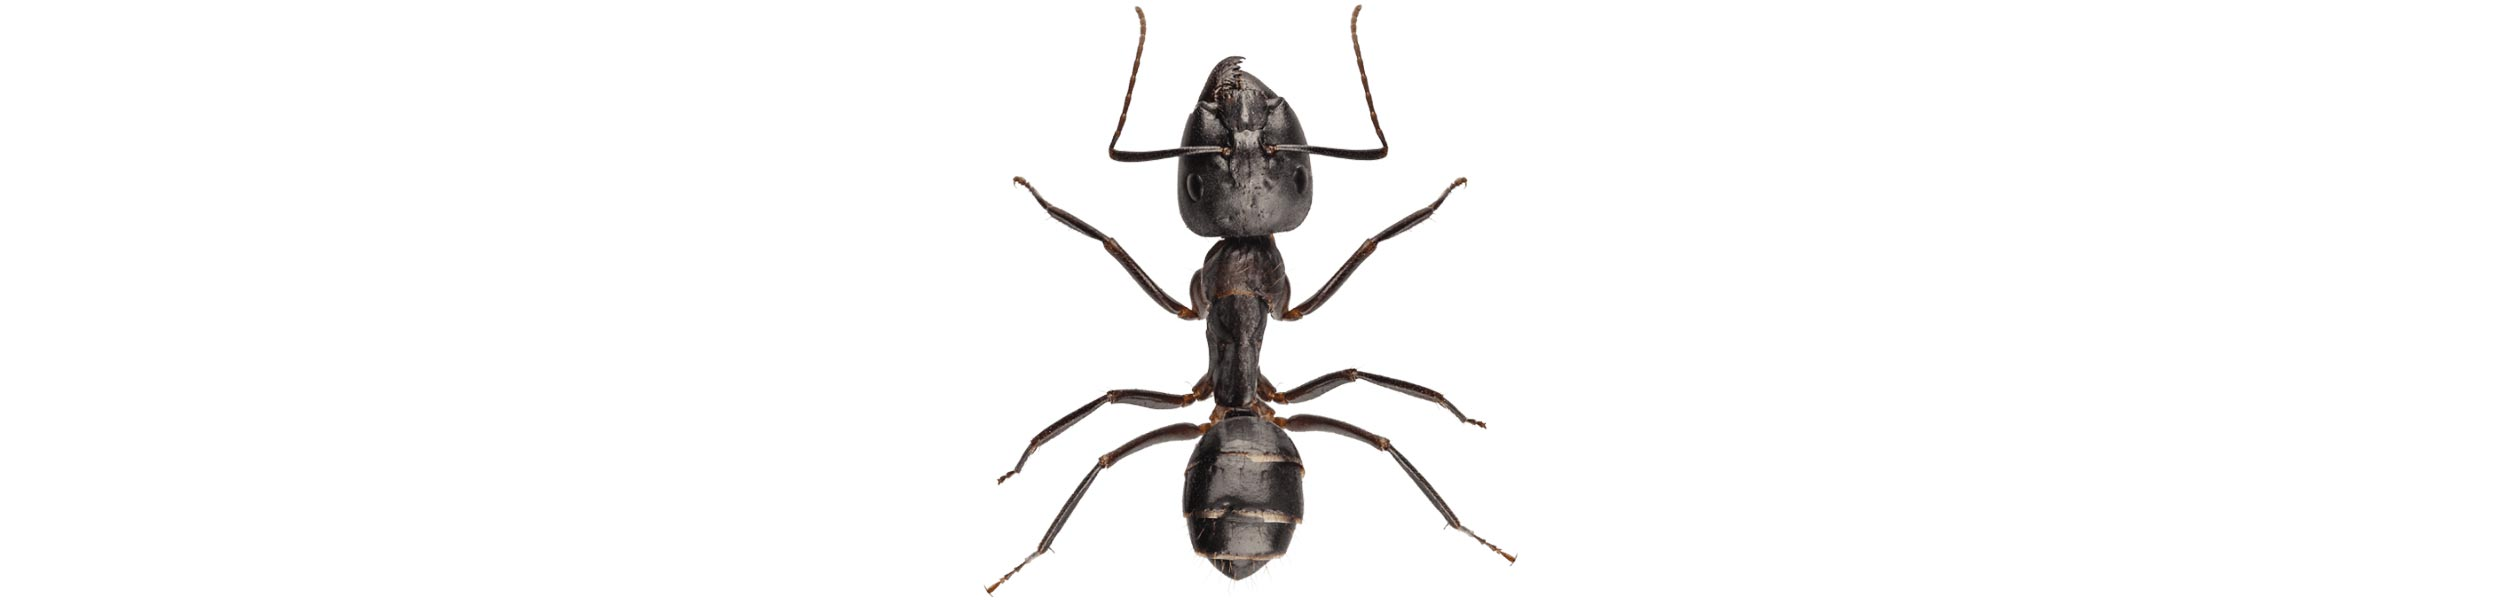 OPC Pest Control - Ants Header